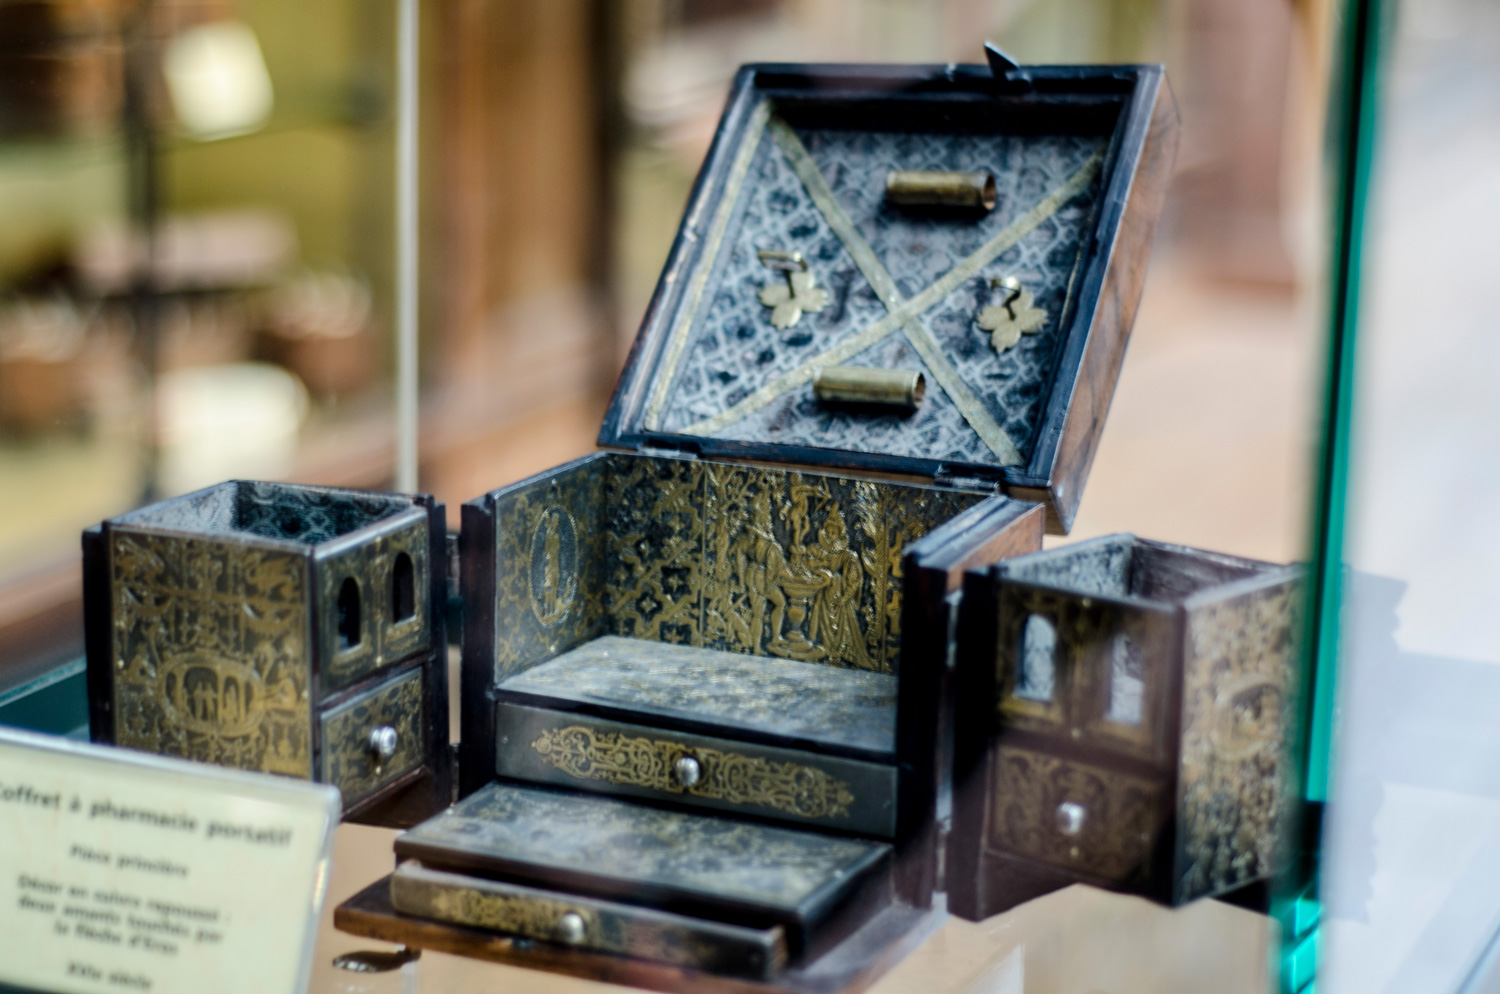 A Family Medical kit box from the seventeenth century.